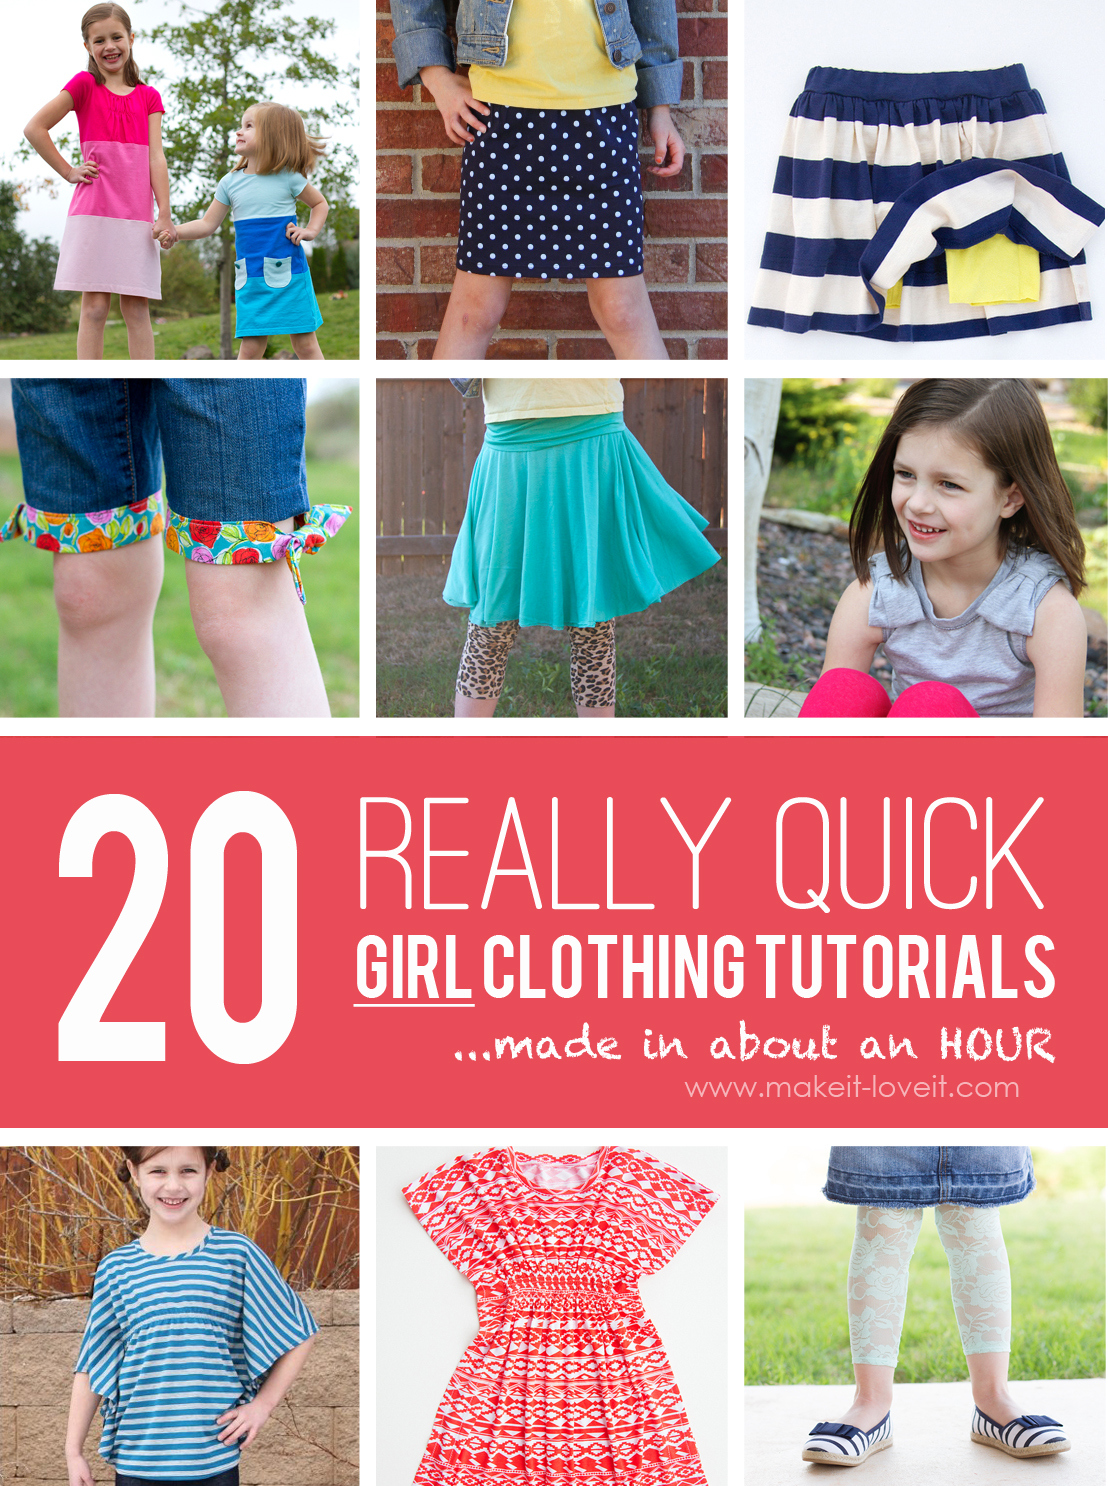 20 quick girl clothing tutorials….made in about an hour!